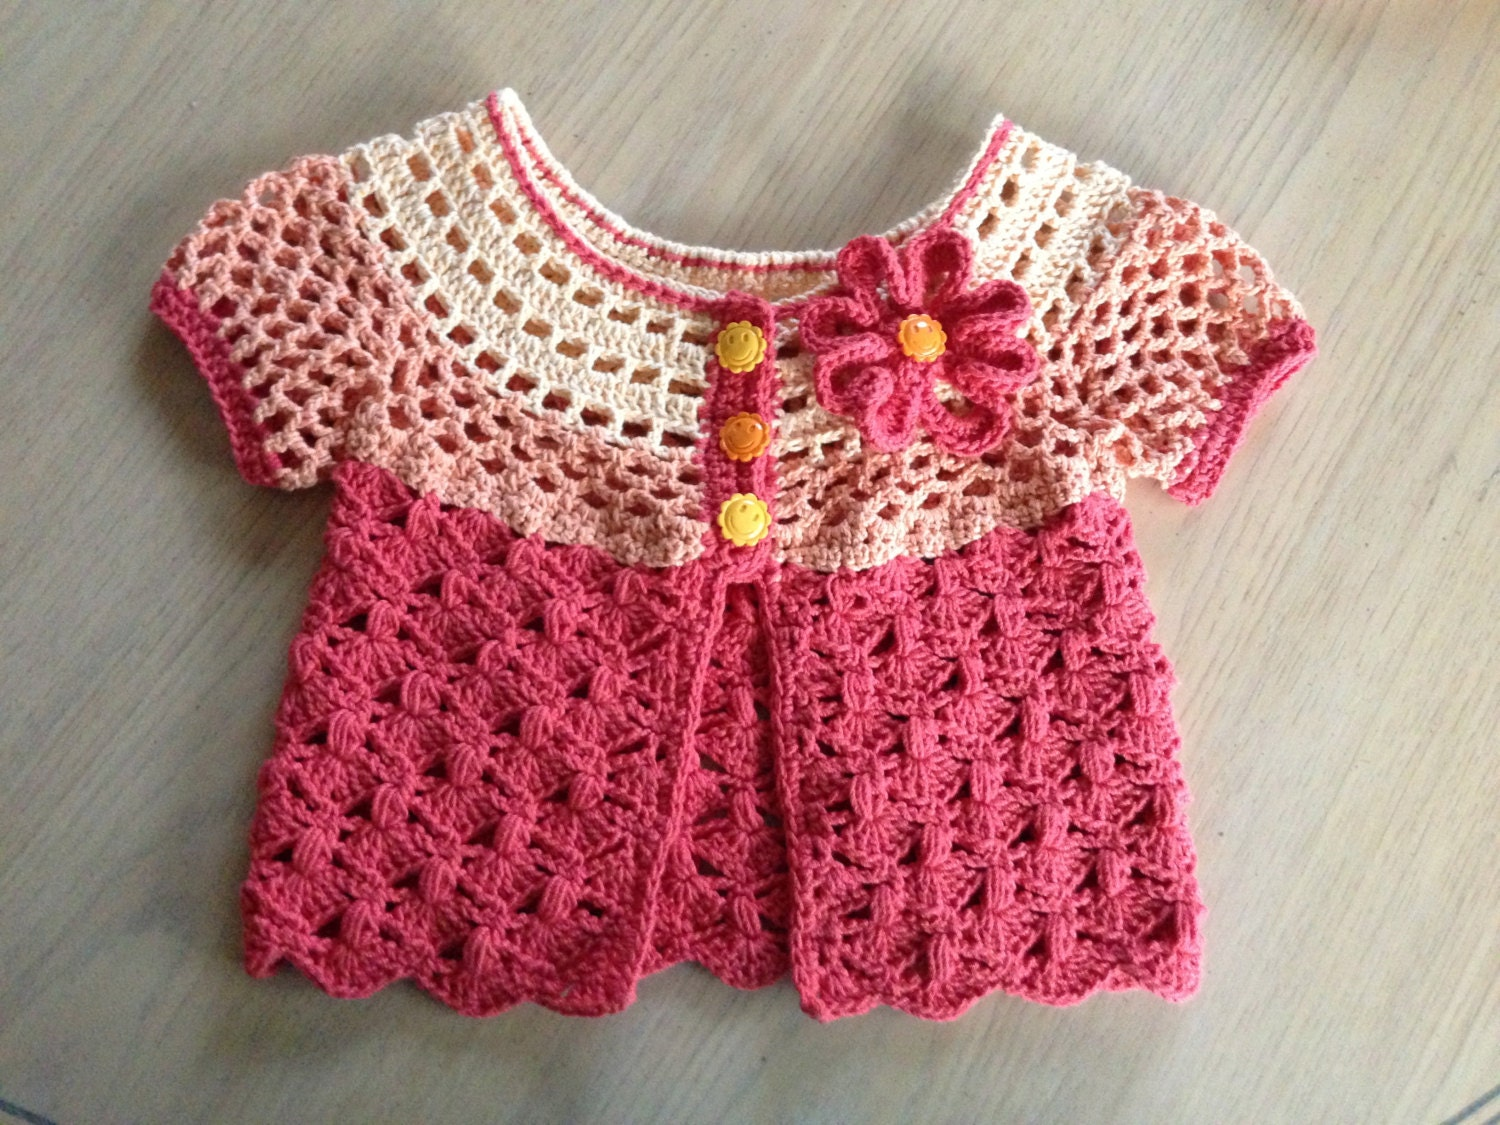 Crochet Pattern for Baby Cardigan Sweater Sunburst Cardigan